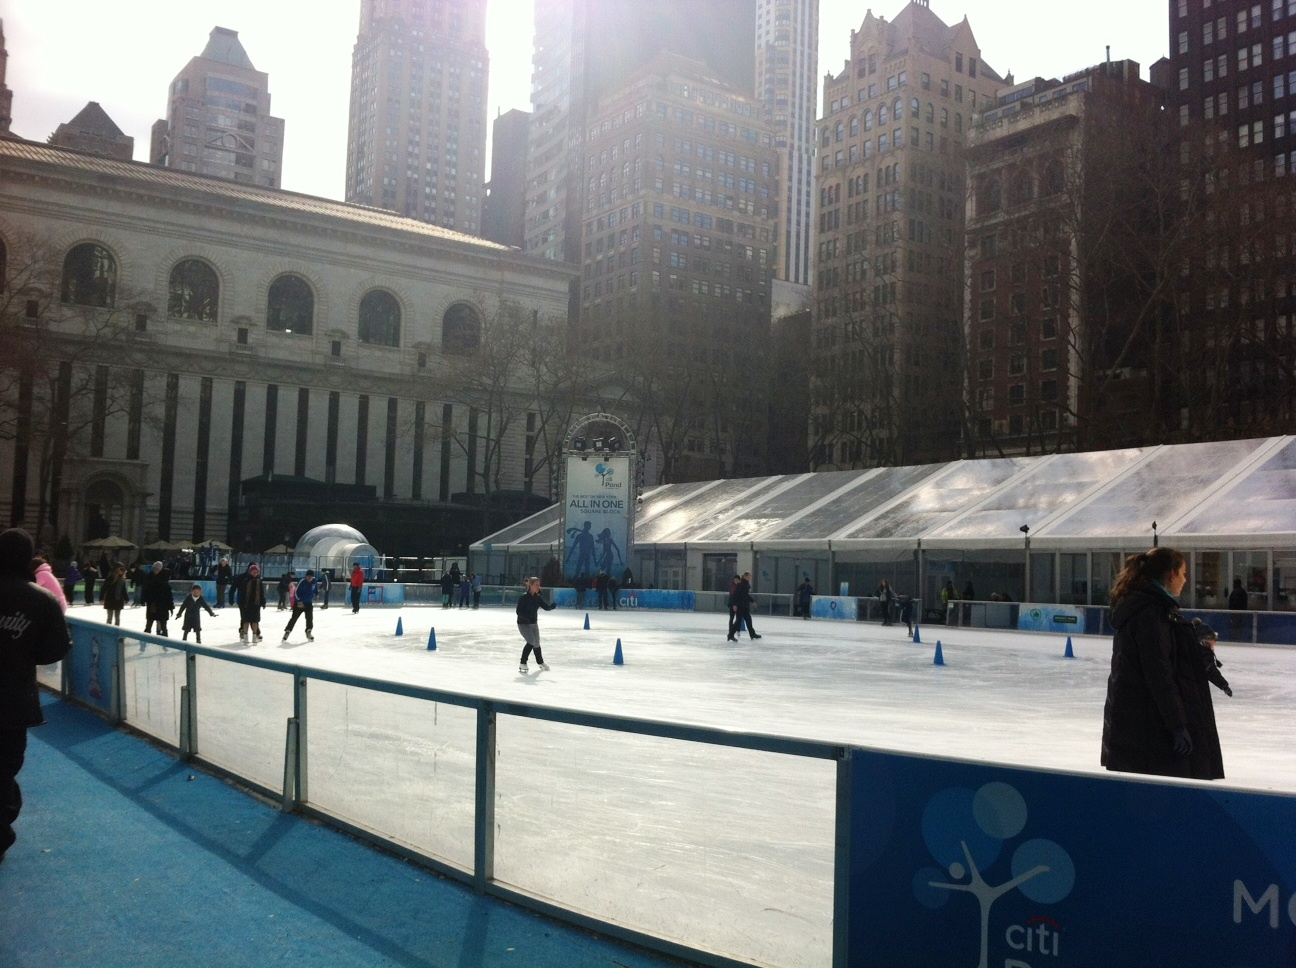 Ice Skating in Bryant Park, NYC, Feb. 20, 2013